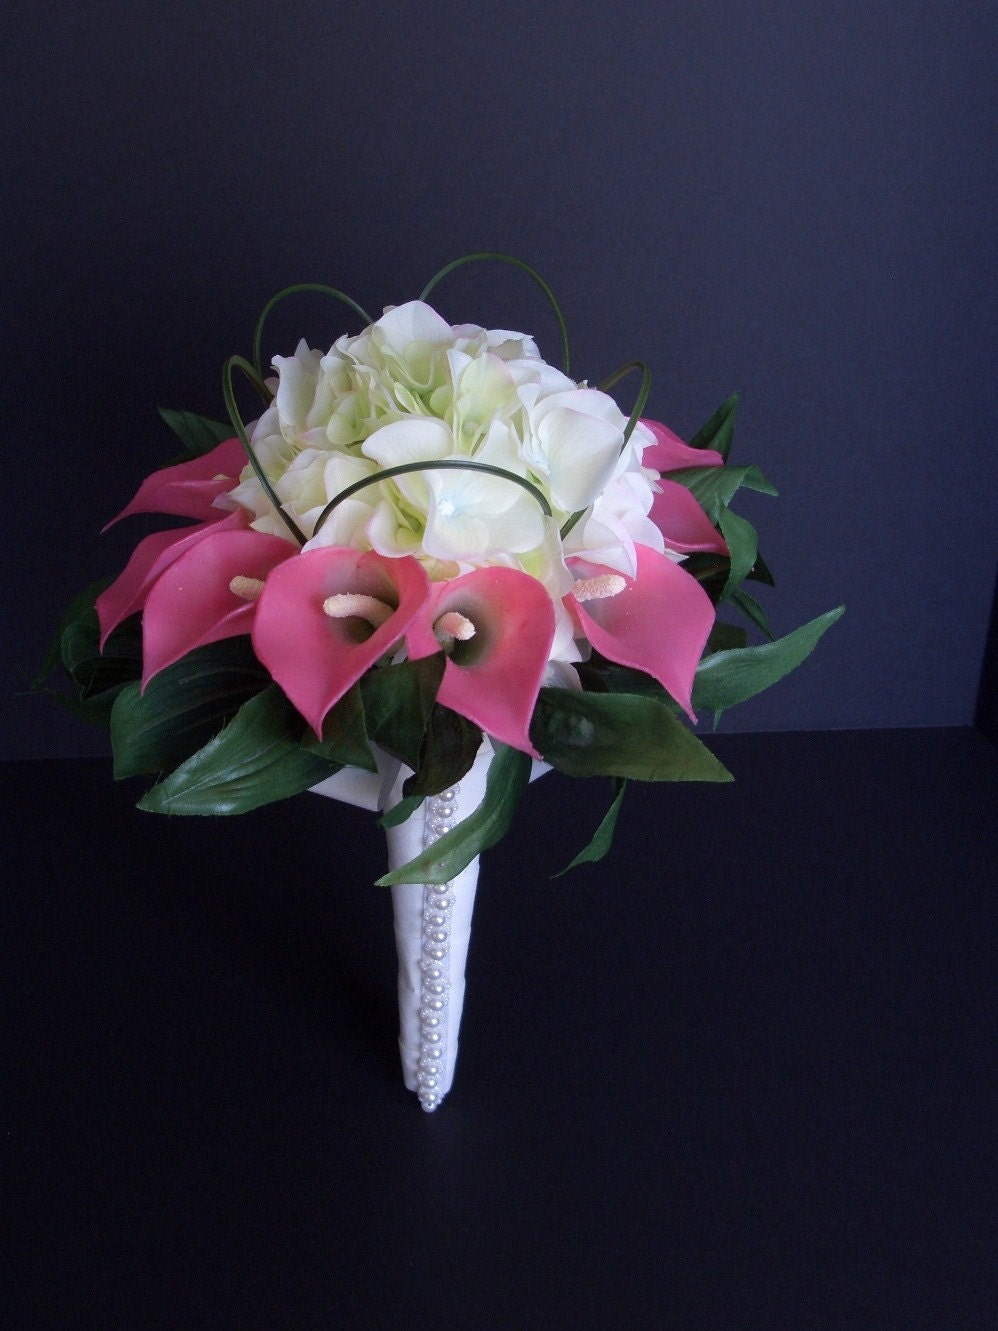 Bridal Bouquet With Calla Lilies And Hydrangeas : Pink calla lily hydrangea bridal bouquet by flowersforthought